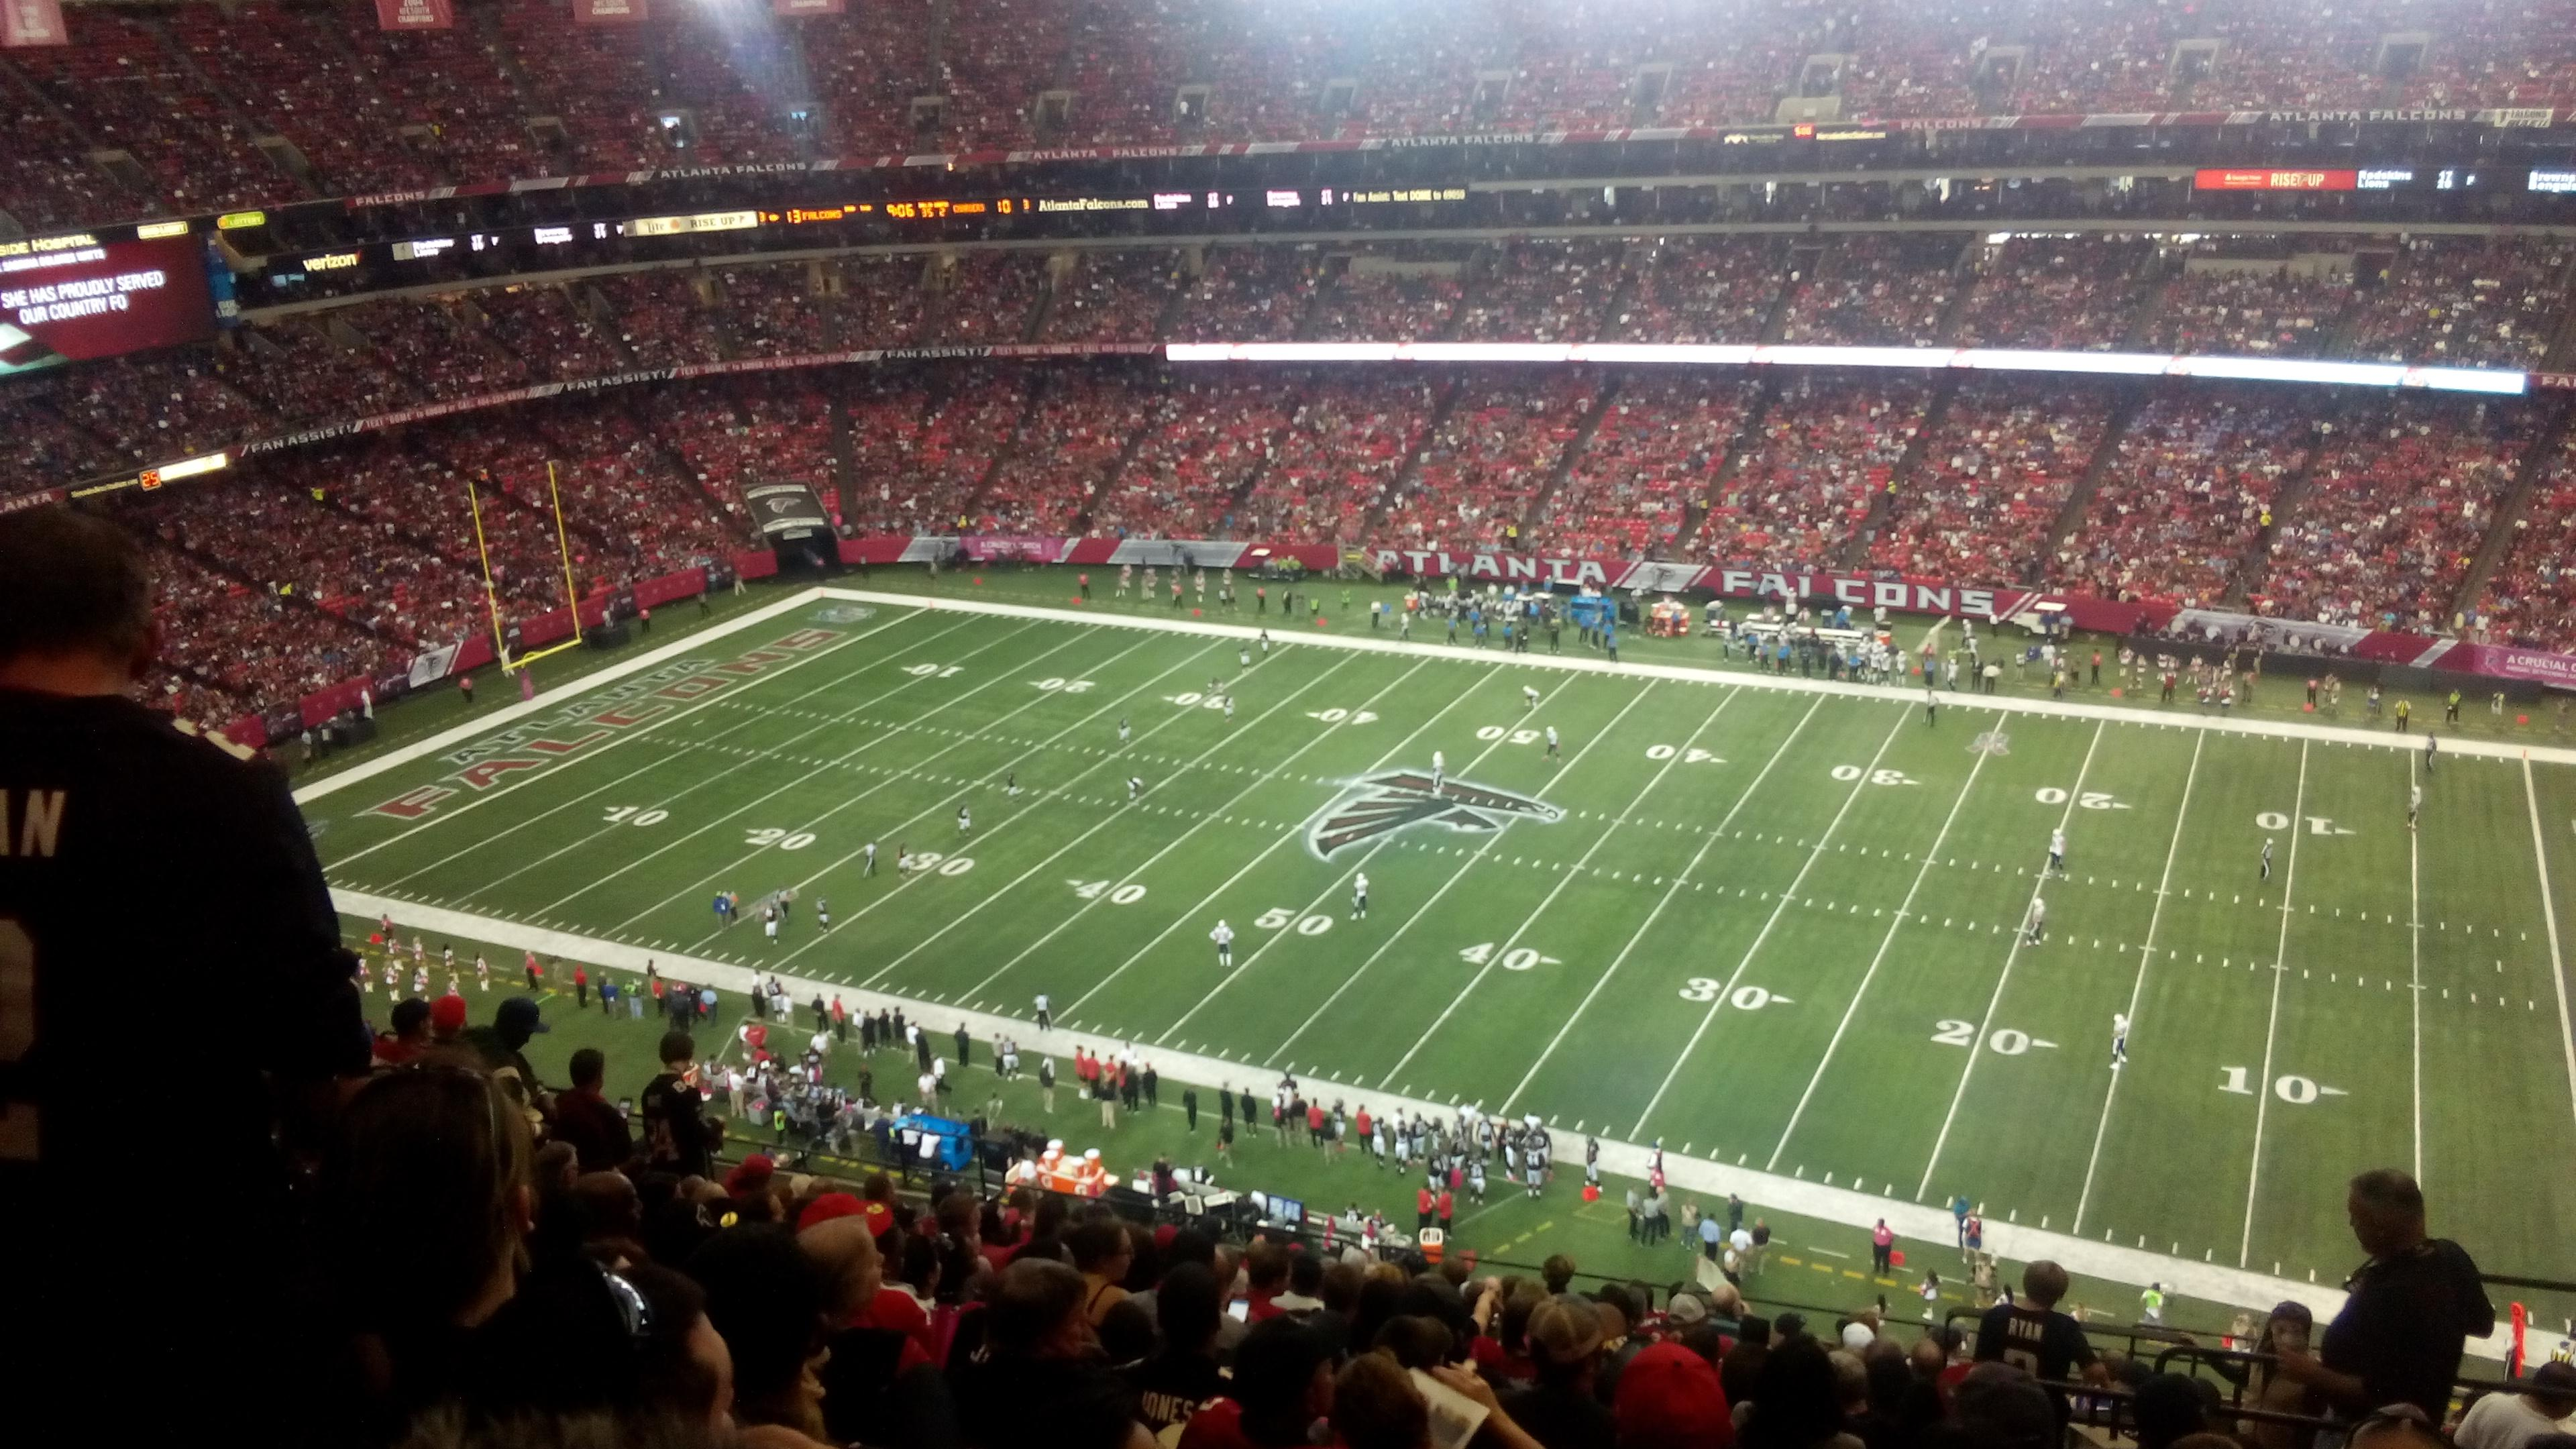 Georgia Dome Section 319 Row 17 Seat 22